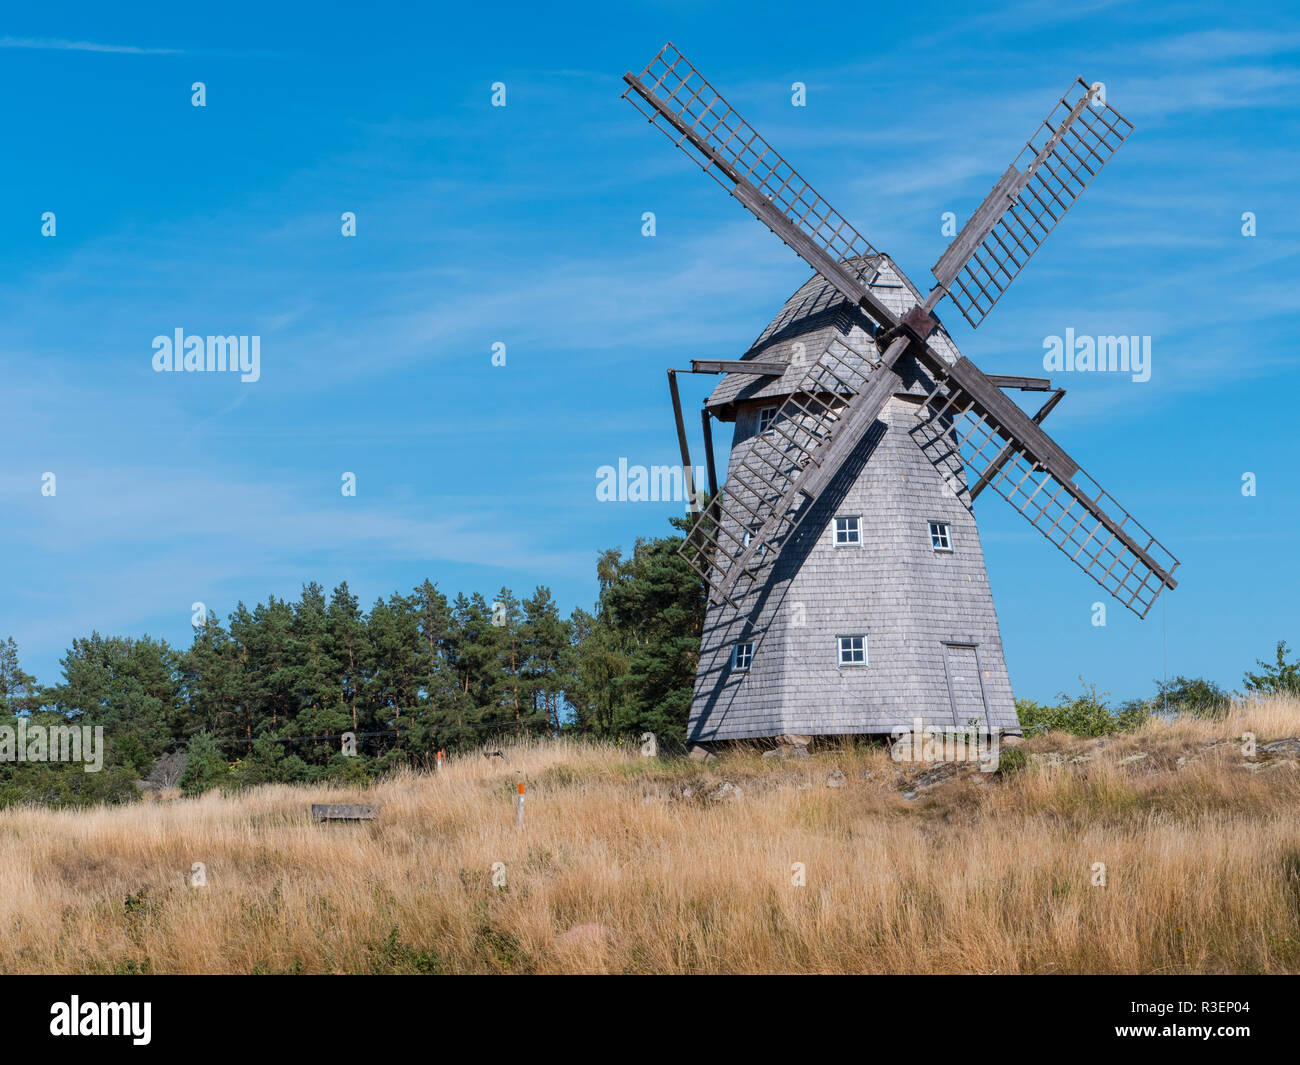 an old Swedish windmill in an autumnal mood - Stock Image